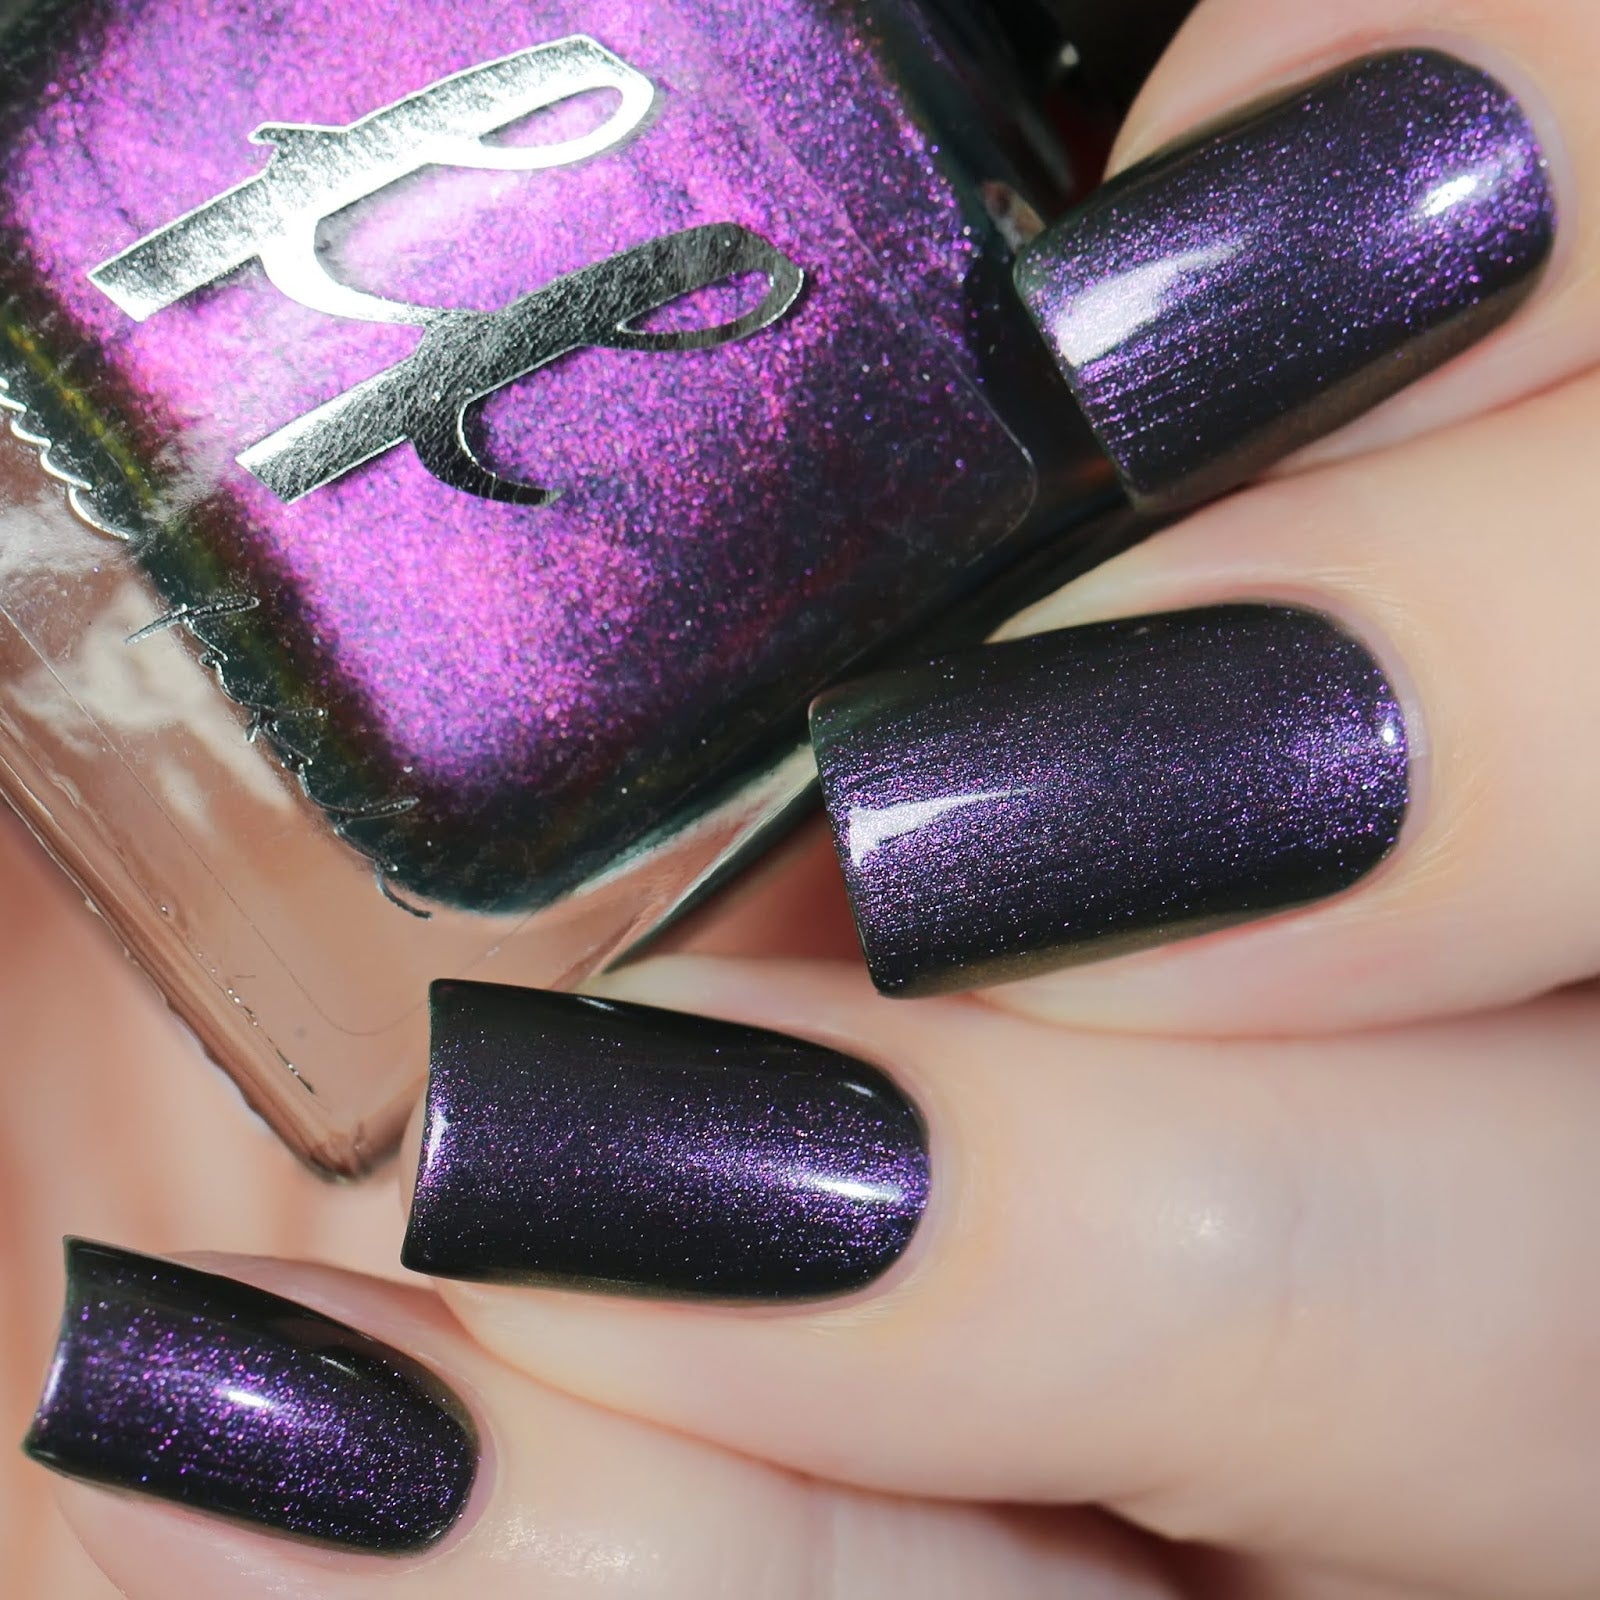 Femme Fatale Cosmetics - Enchanted Fables (Princes & Heroes) - The Snake Prince